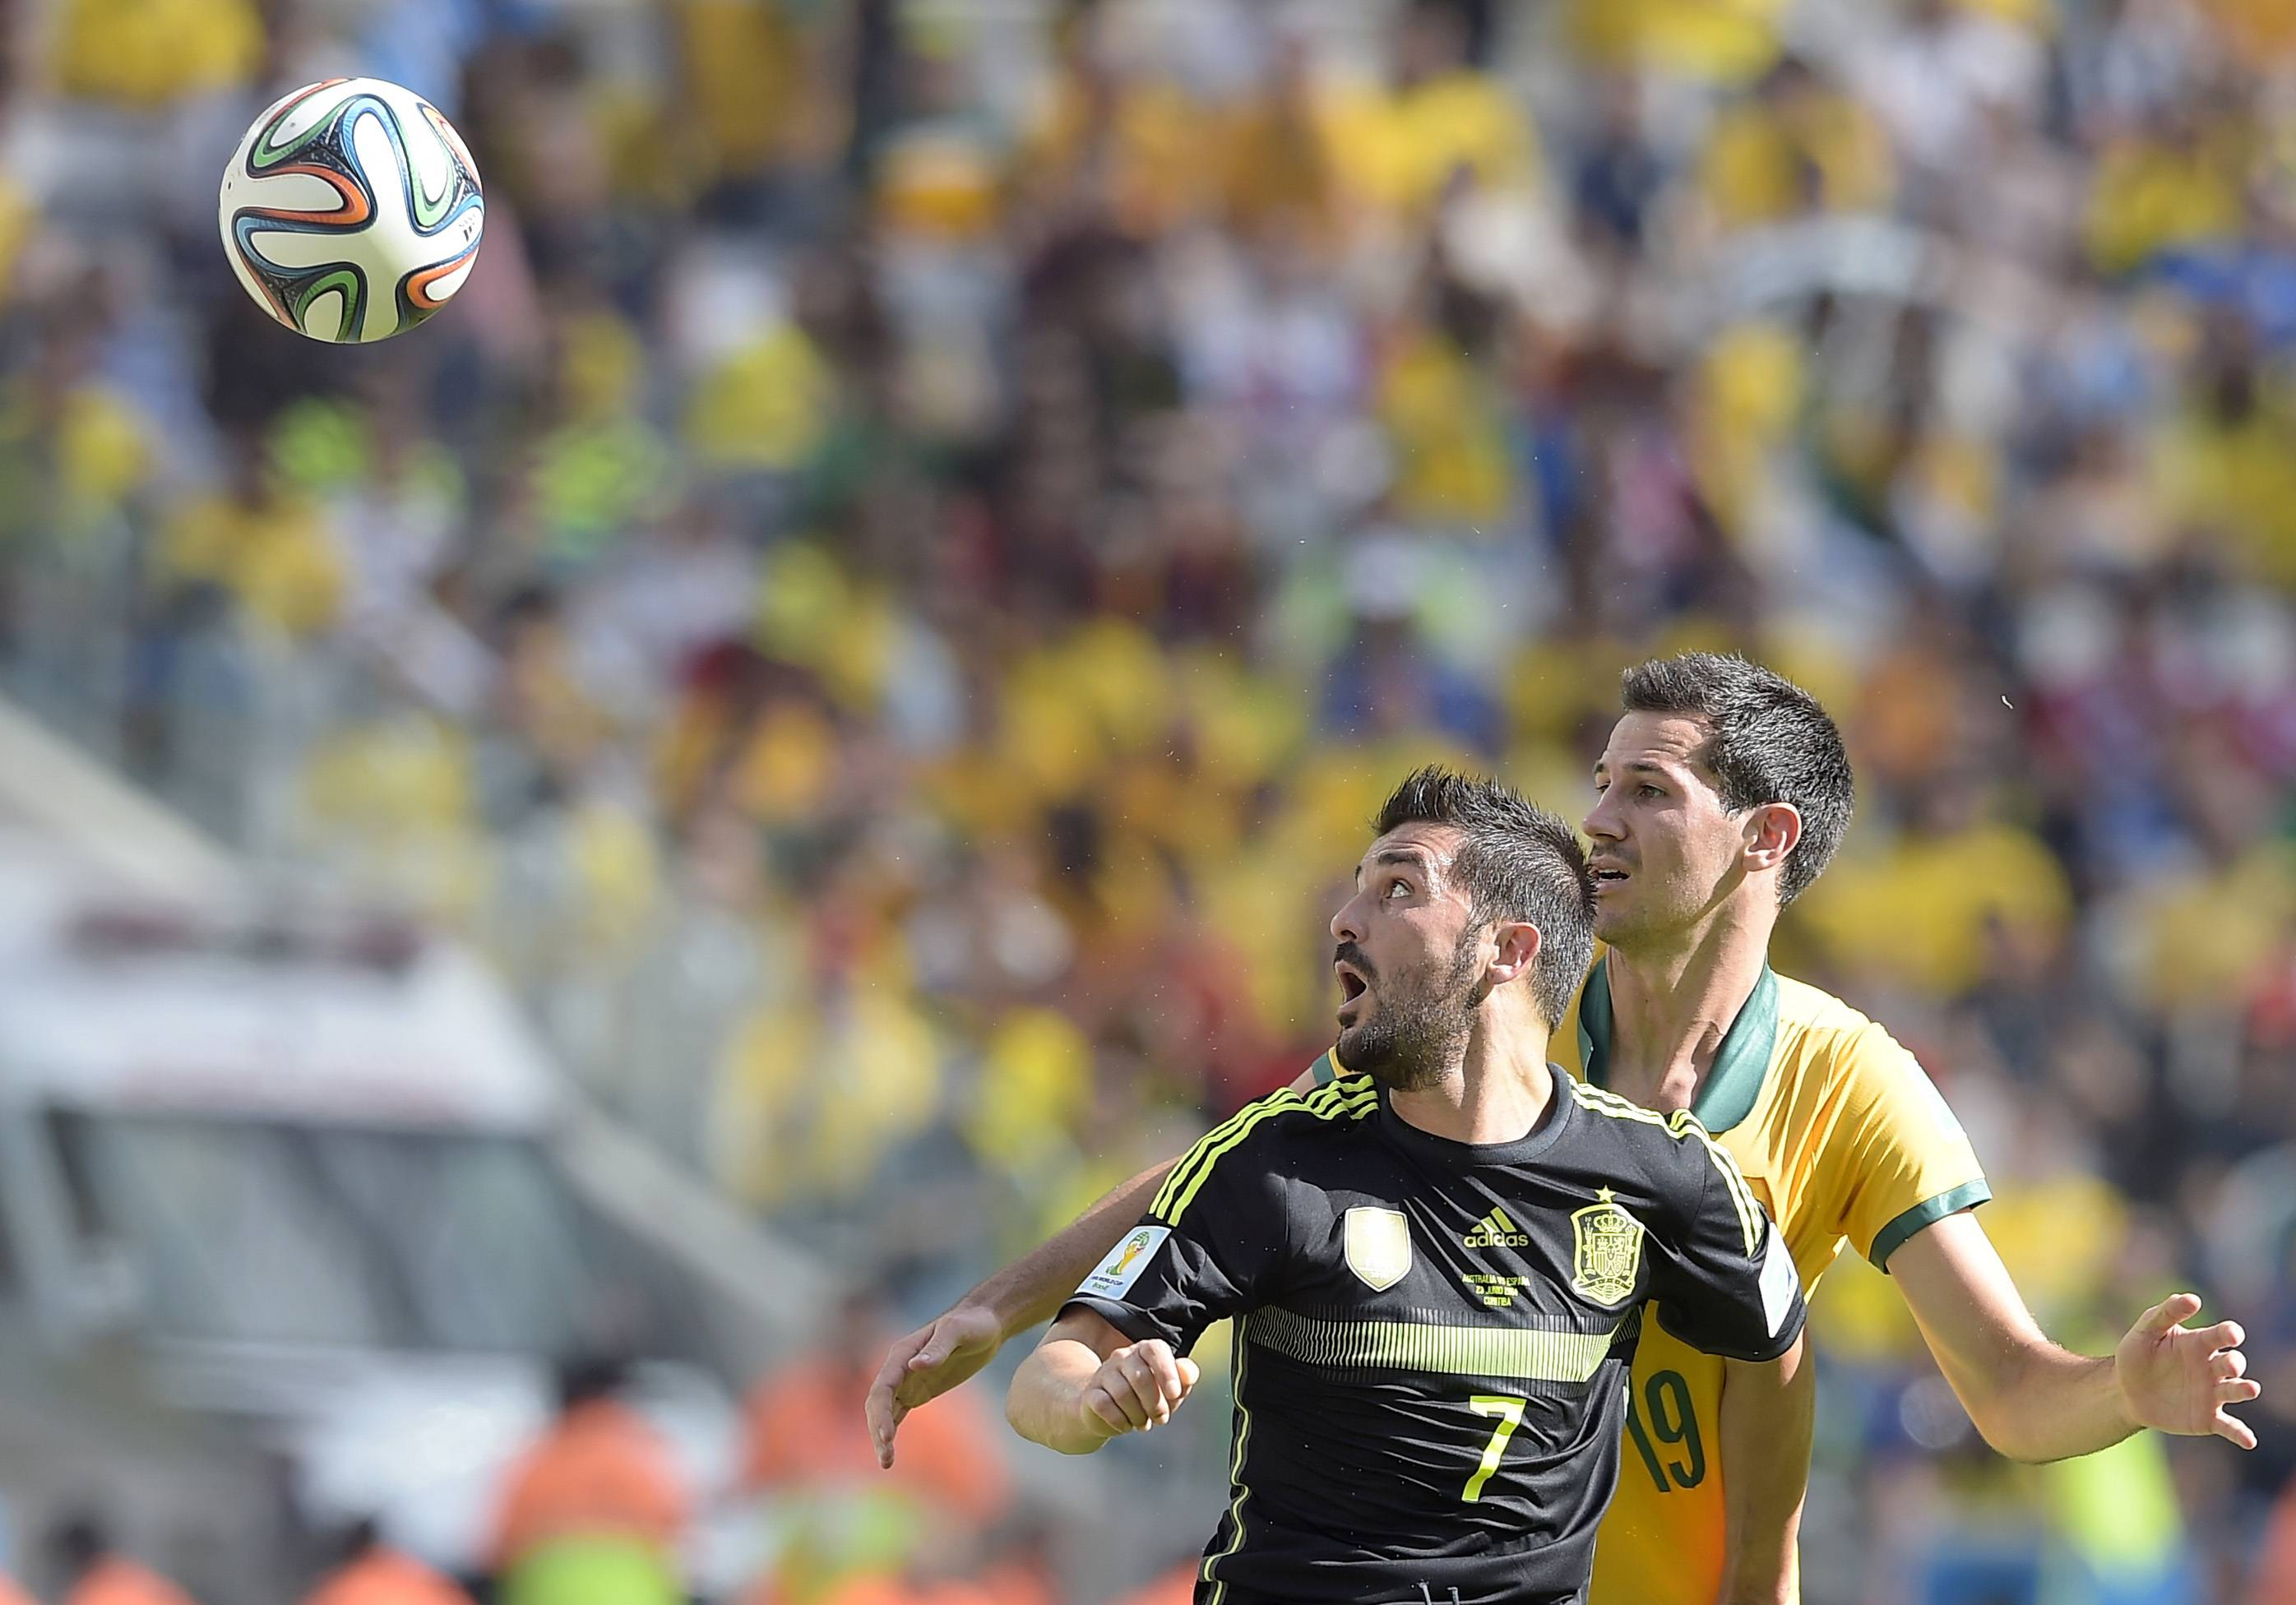 Spain's David Villa, left, and Australia's Ryan McGowan go for a header Monday during a Group B World Cup soccer match at the Arena da Baixada in Curitiba, Brazil.